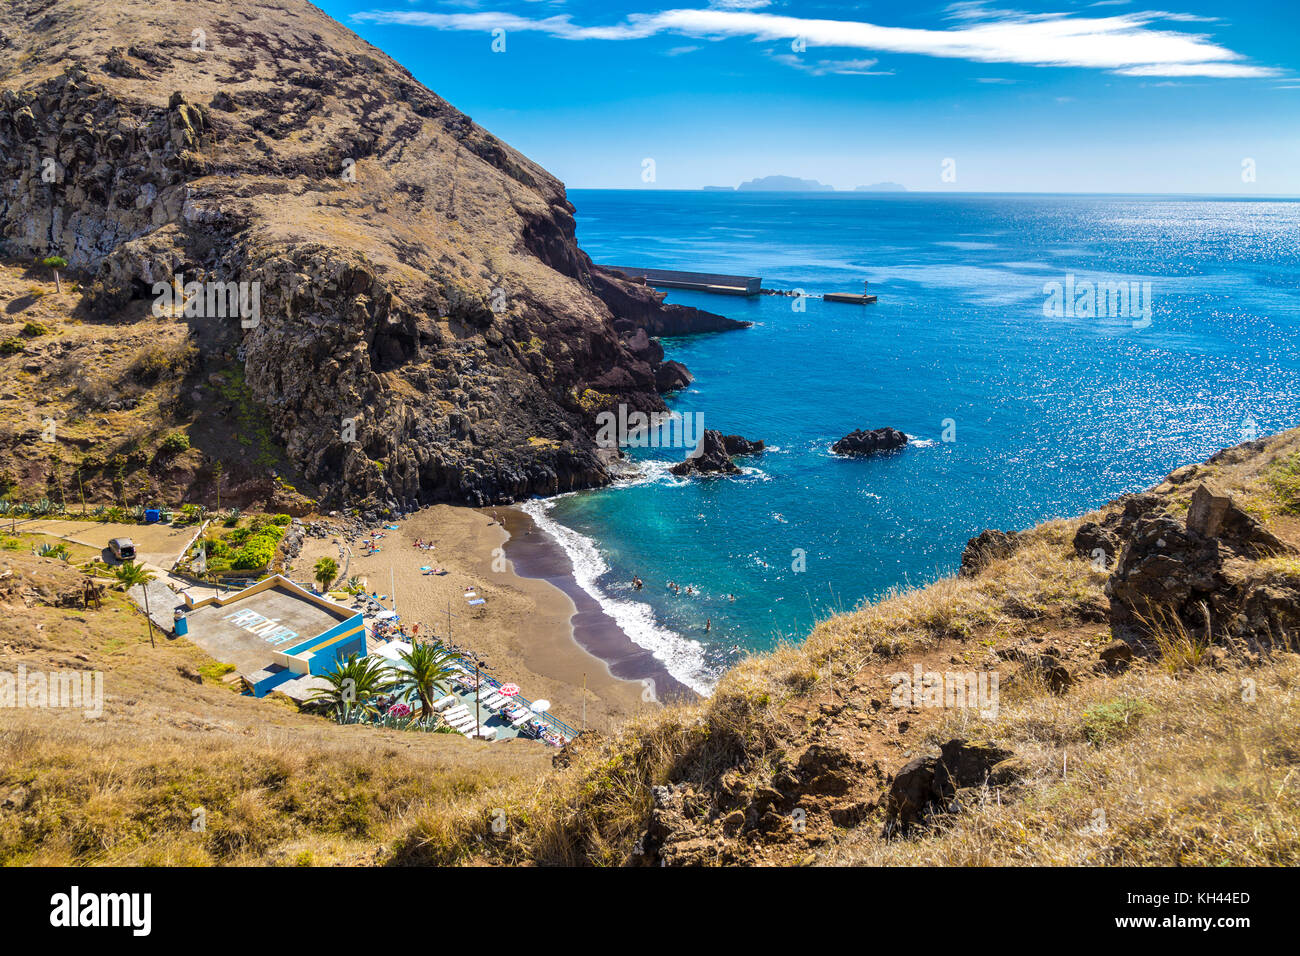 Prainha Beach tucked away between cliffs - the only sandy beach in Madeira, Portugal - Stock Image